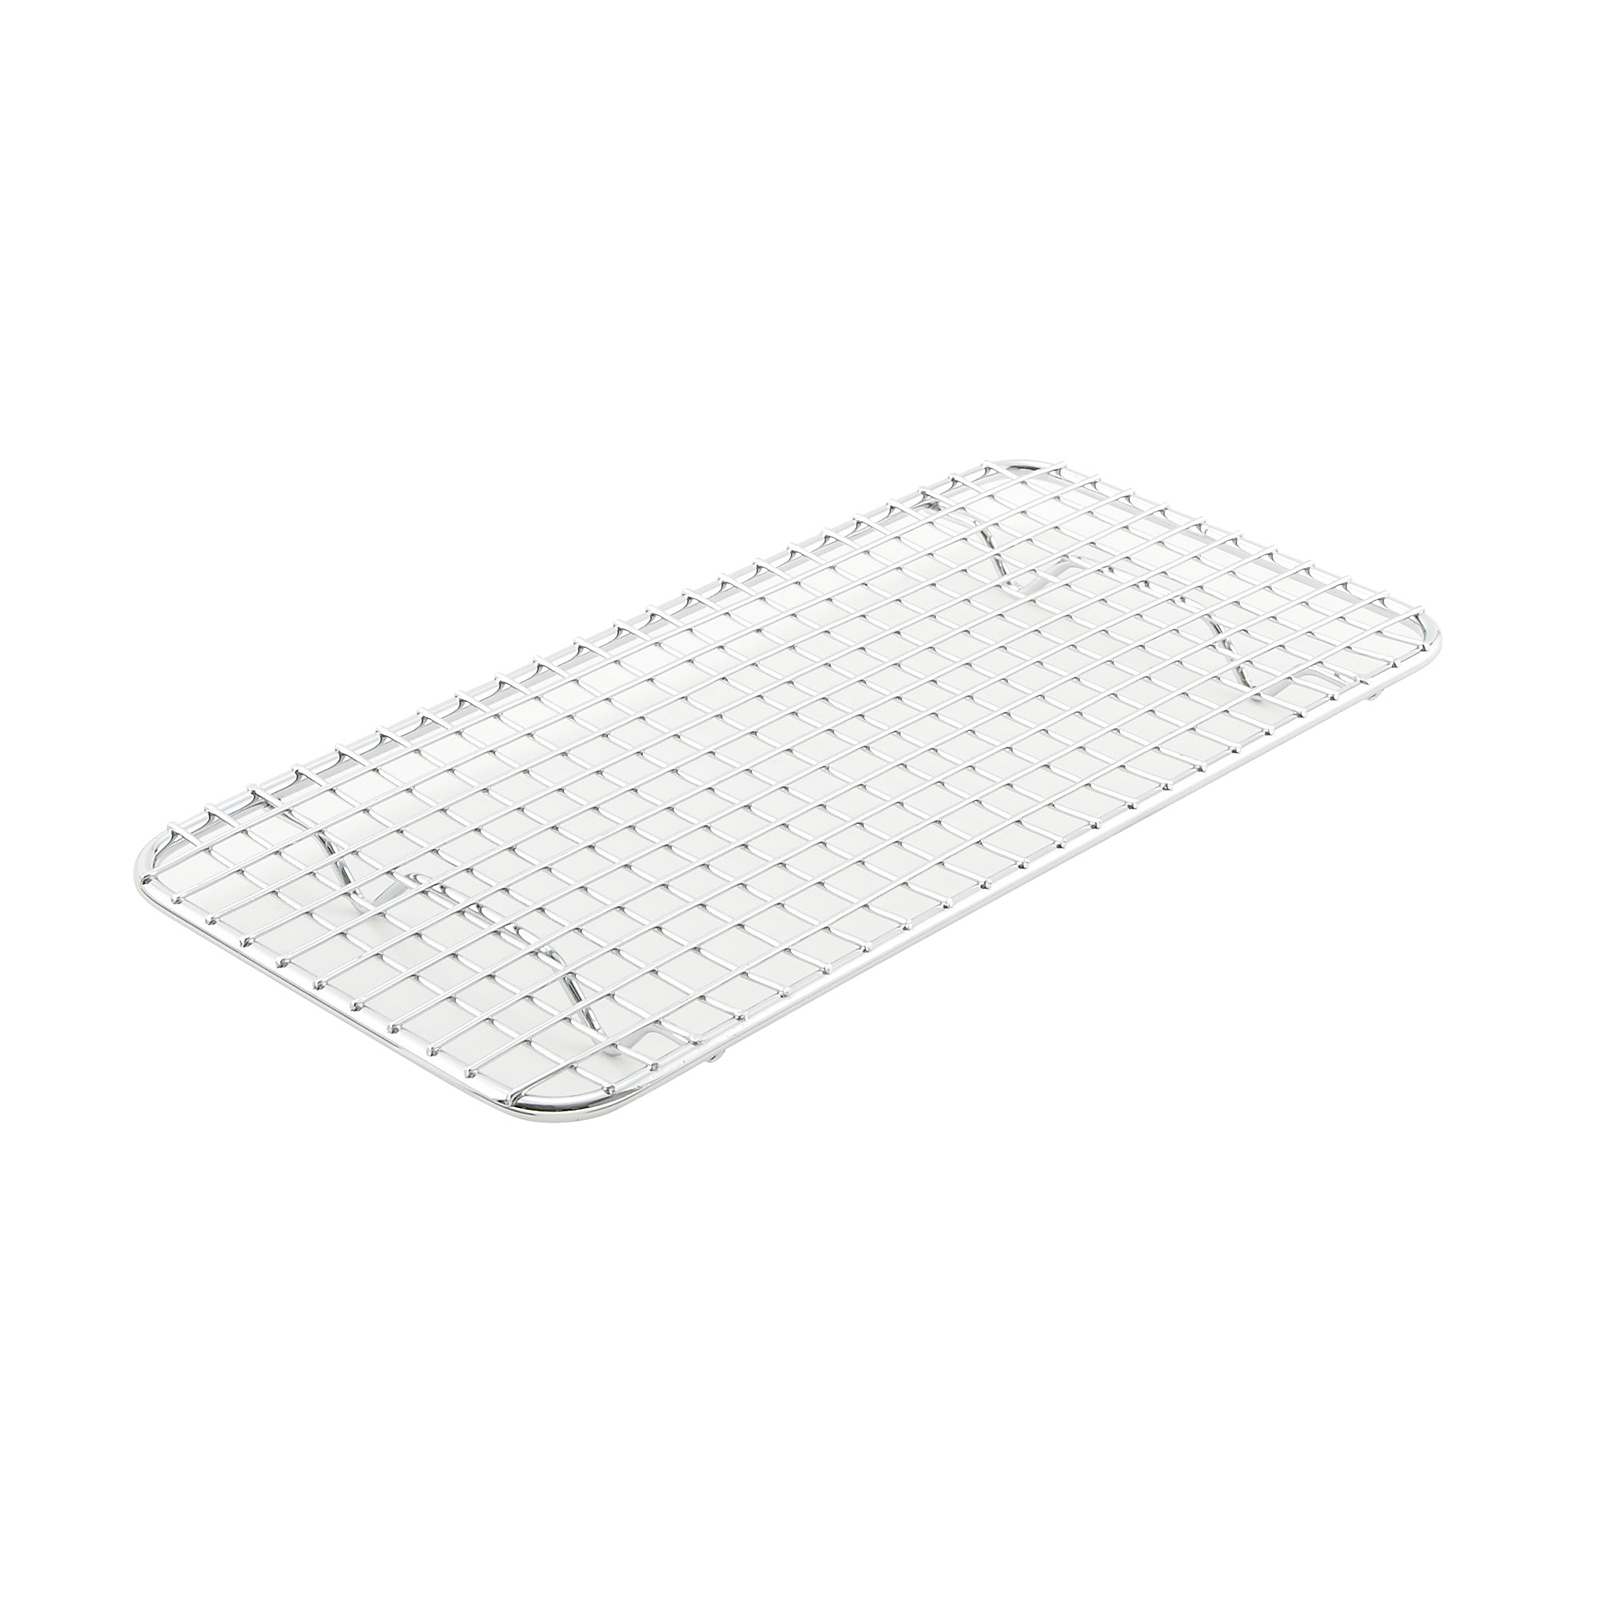 Winco PGW-510 wire pan rack / grate